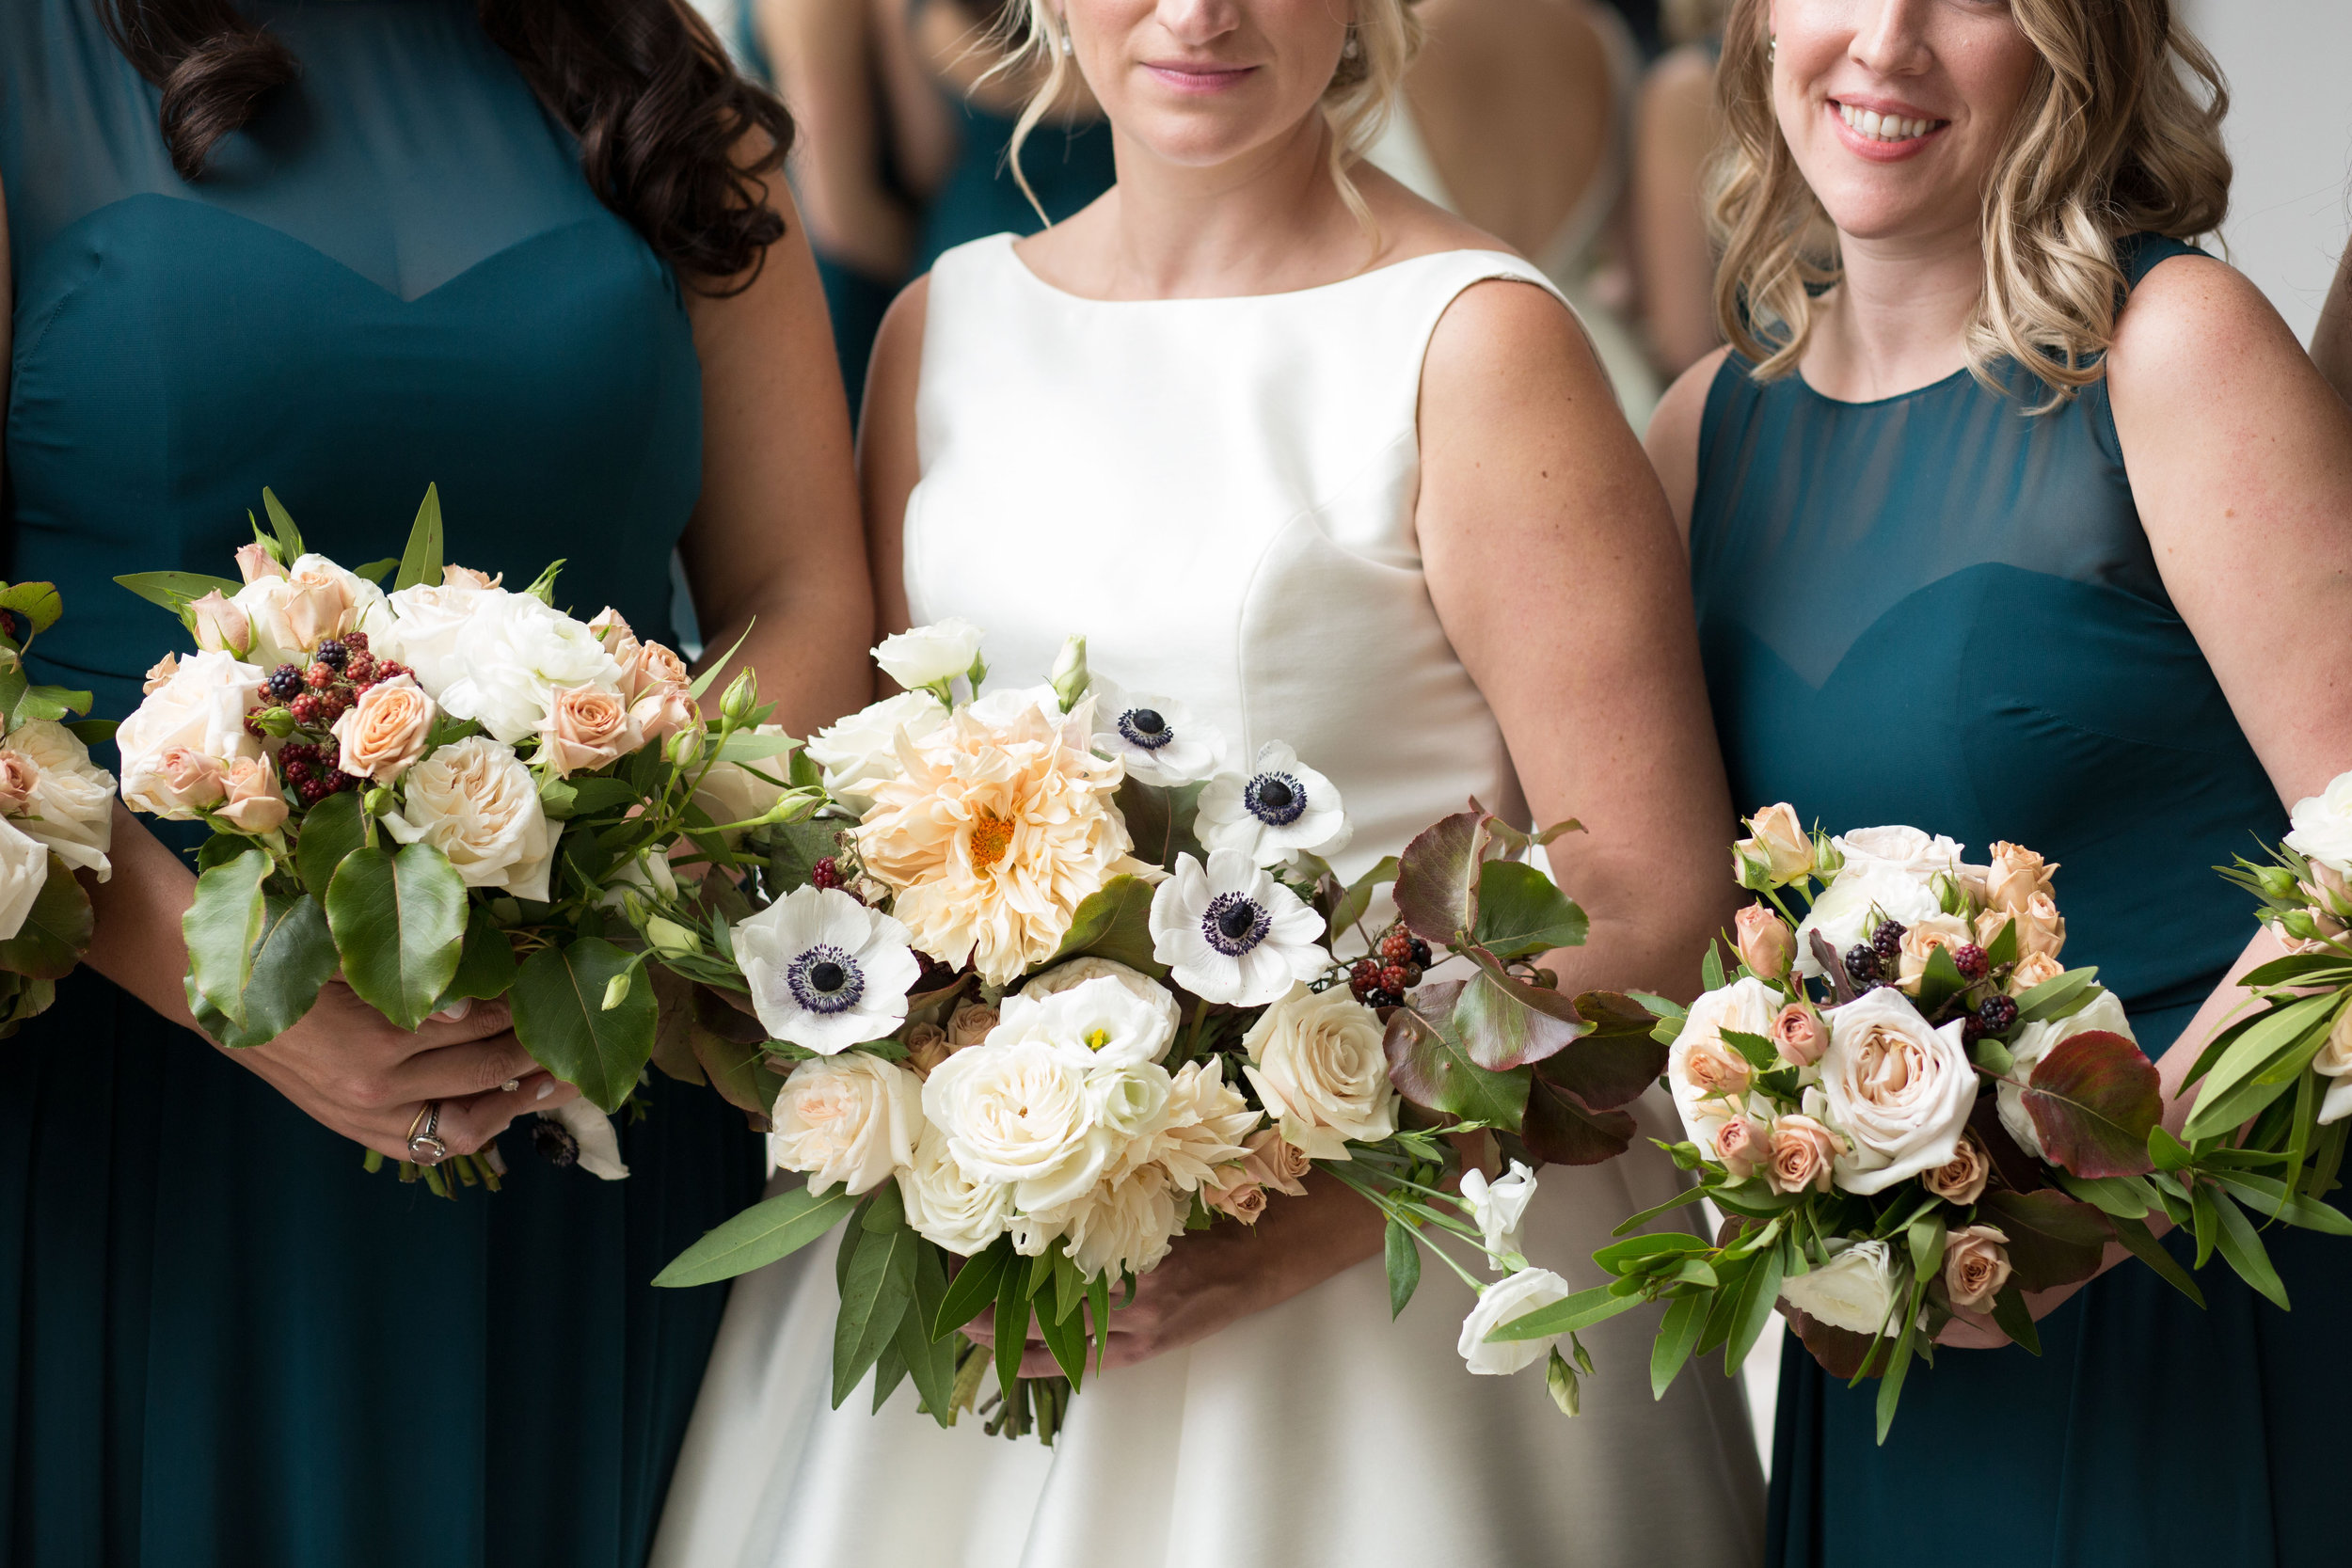 Floral by Fleur Inc, Photo by Natalie Probst, Bridal and Bridesmaid Bouquets at Saddle and Cycle Club, Autumn Chicago Wedding.